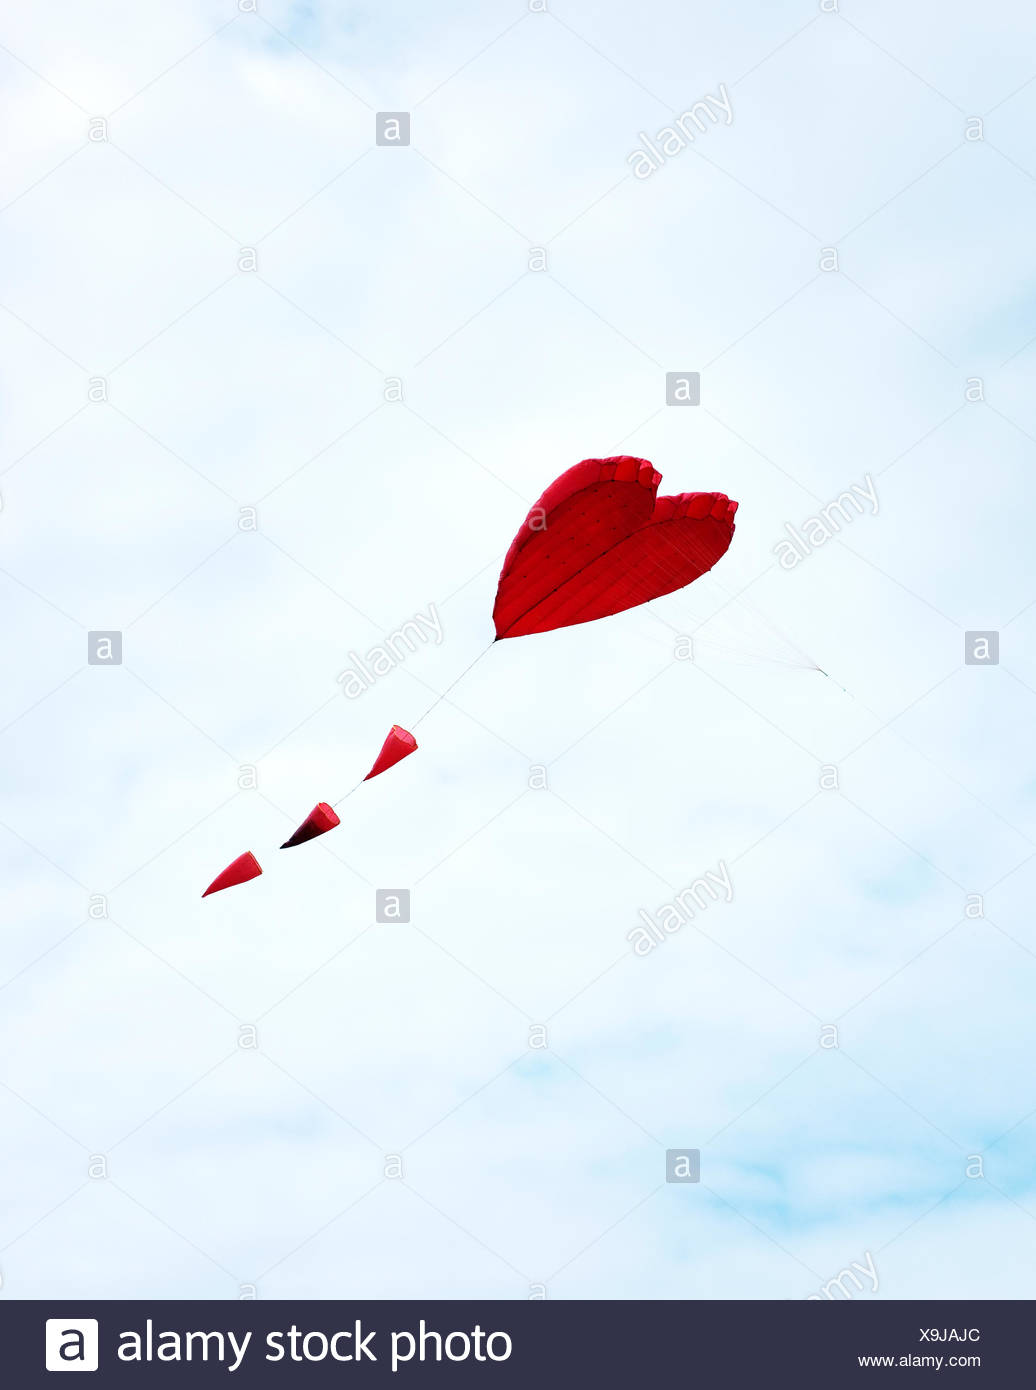 France, Brittany, Heart-shape red kite in sky - Stock Image